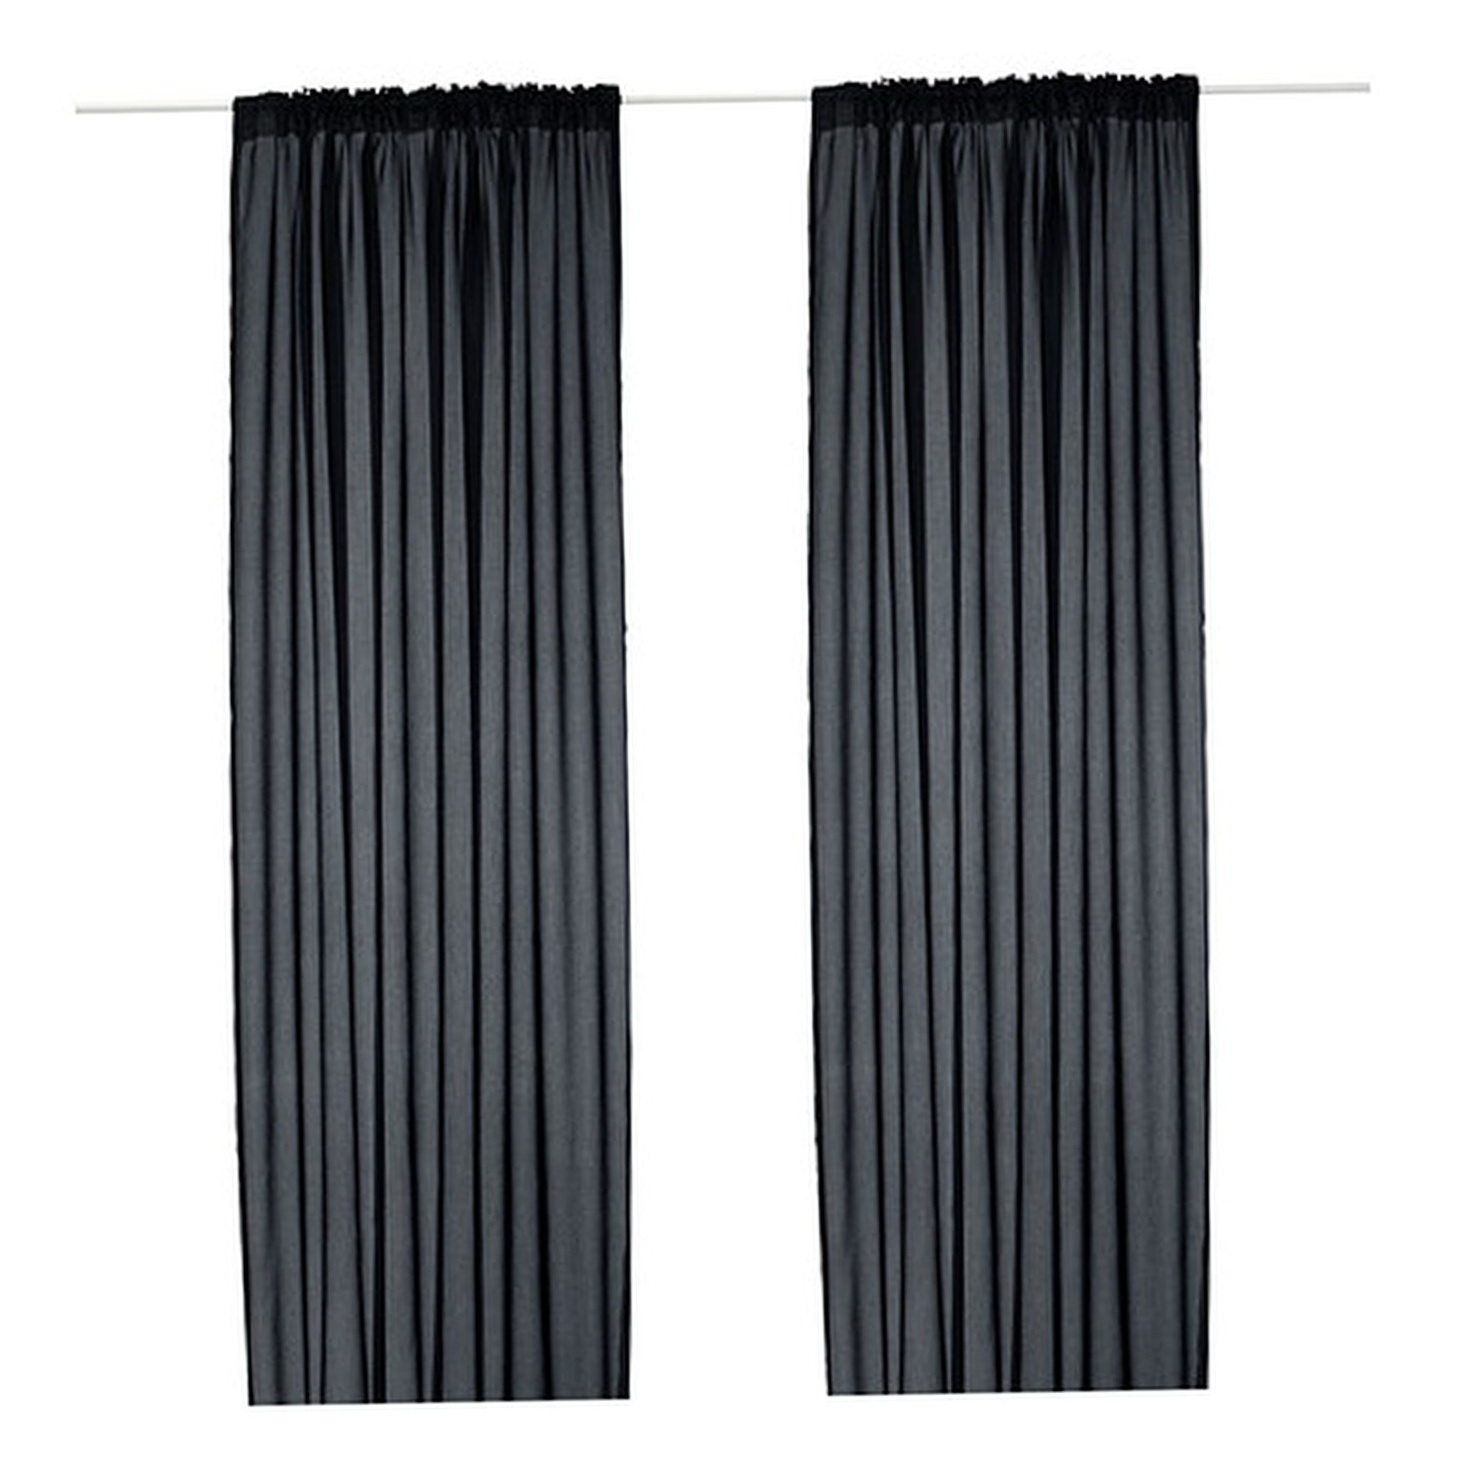 Ikea curtain panels uk home design ideas for Ikea curtain rods uk